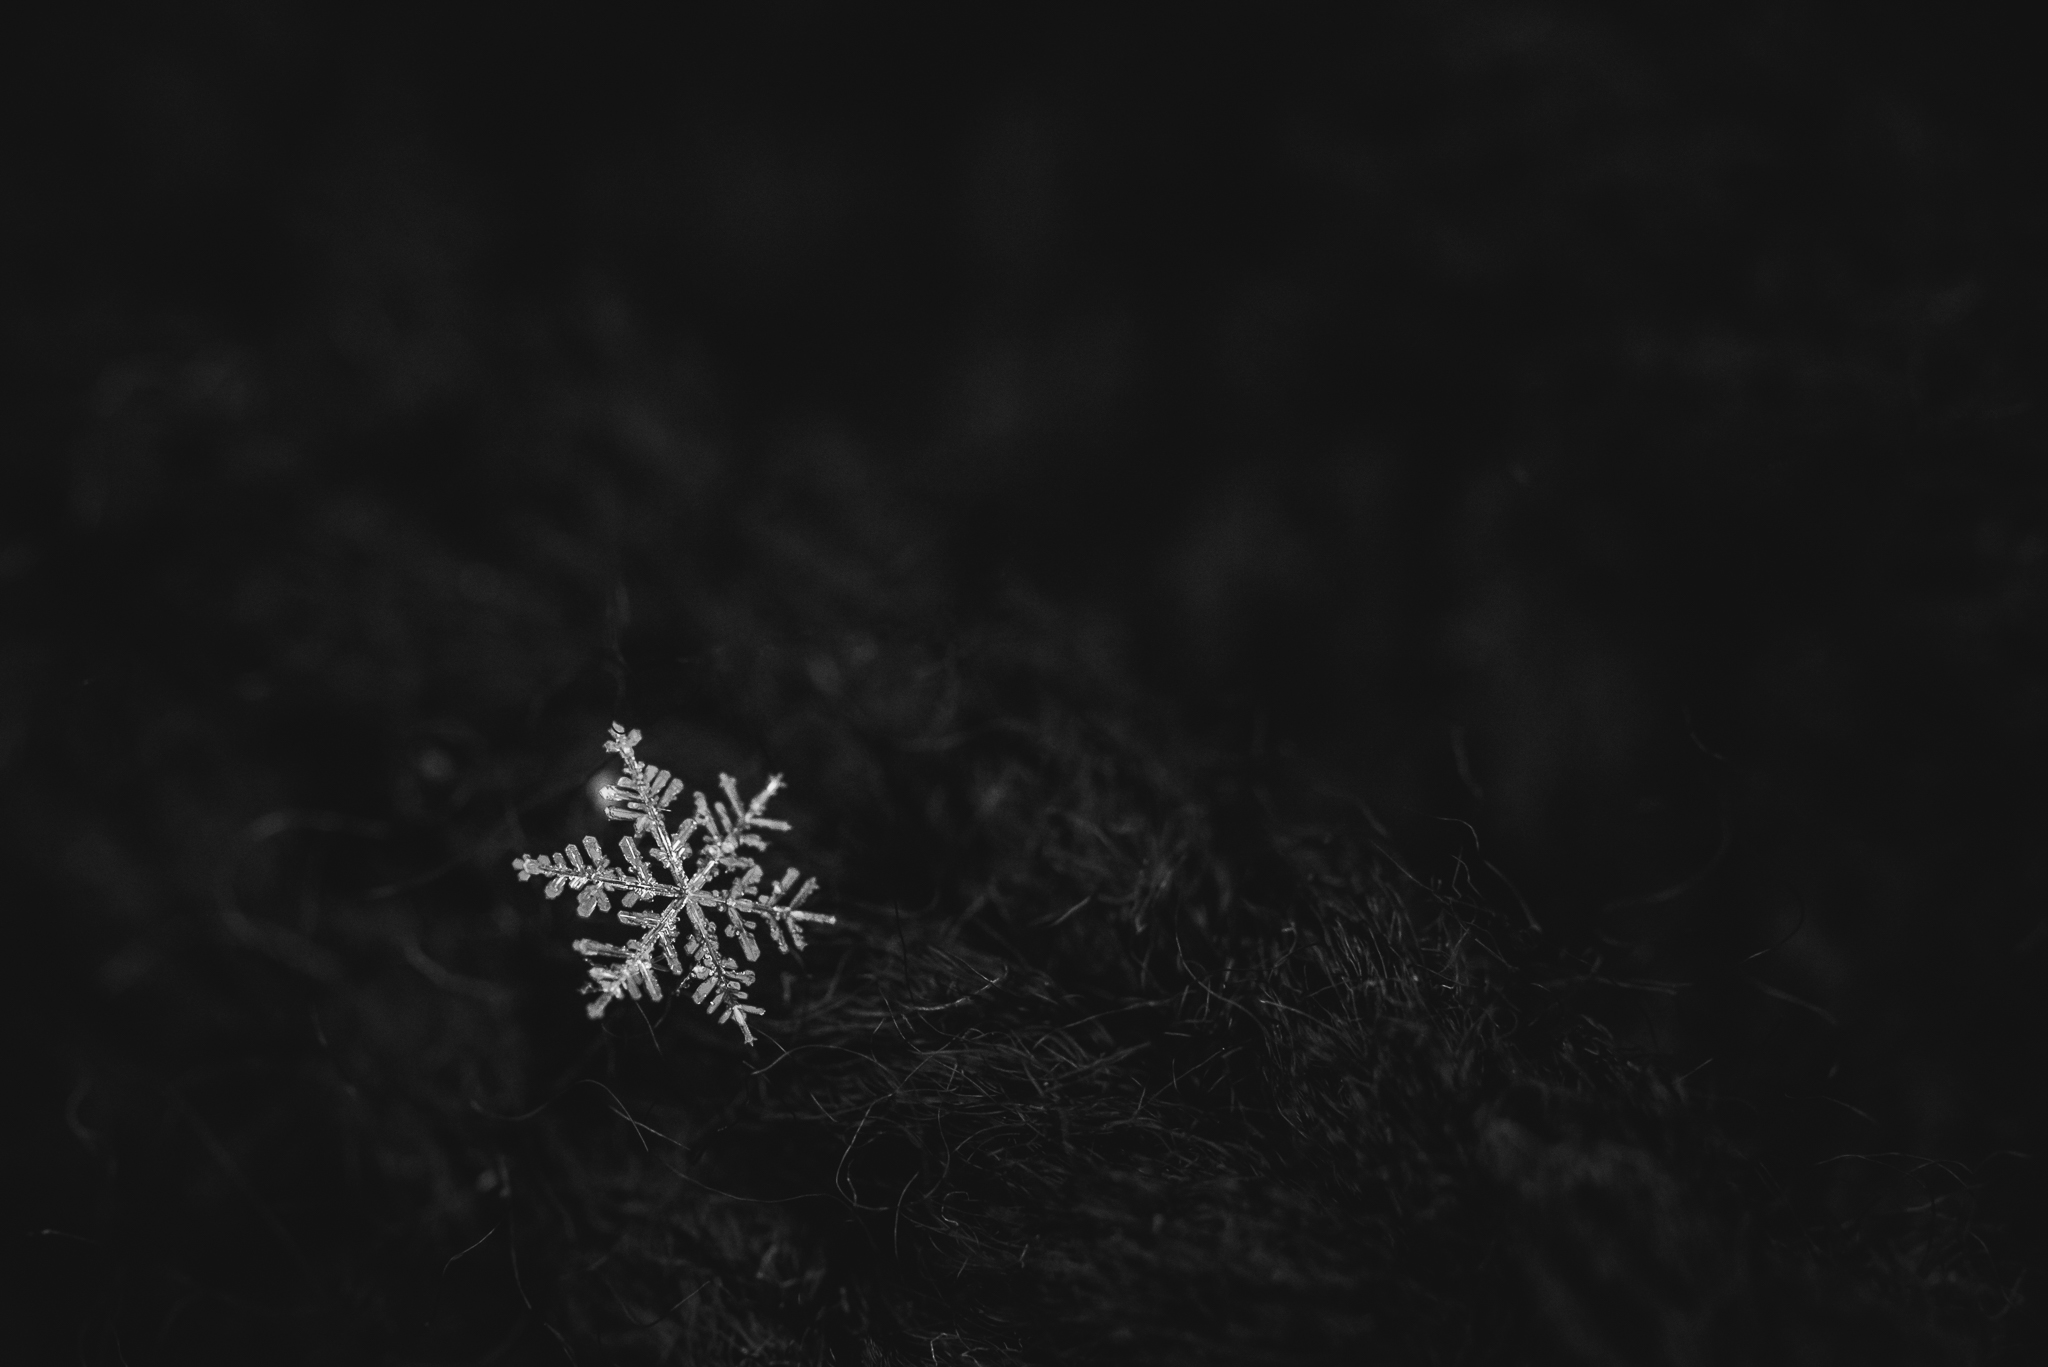 macro-image-of-snowflake-in-black-and-white